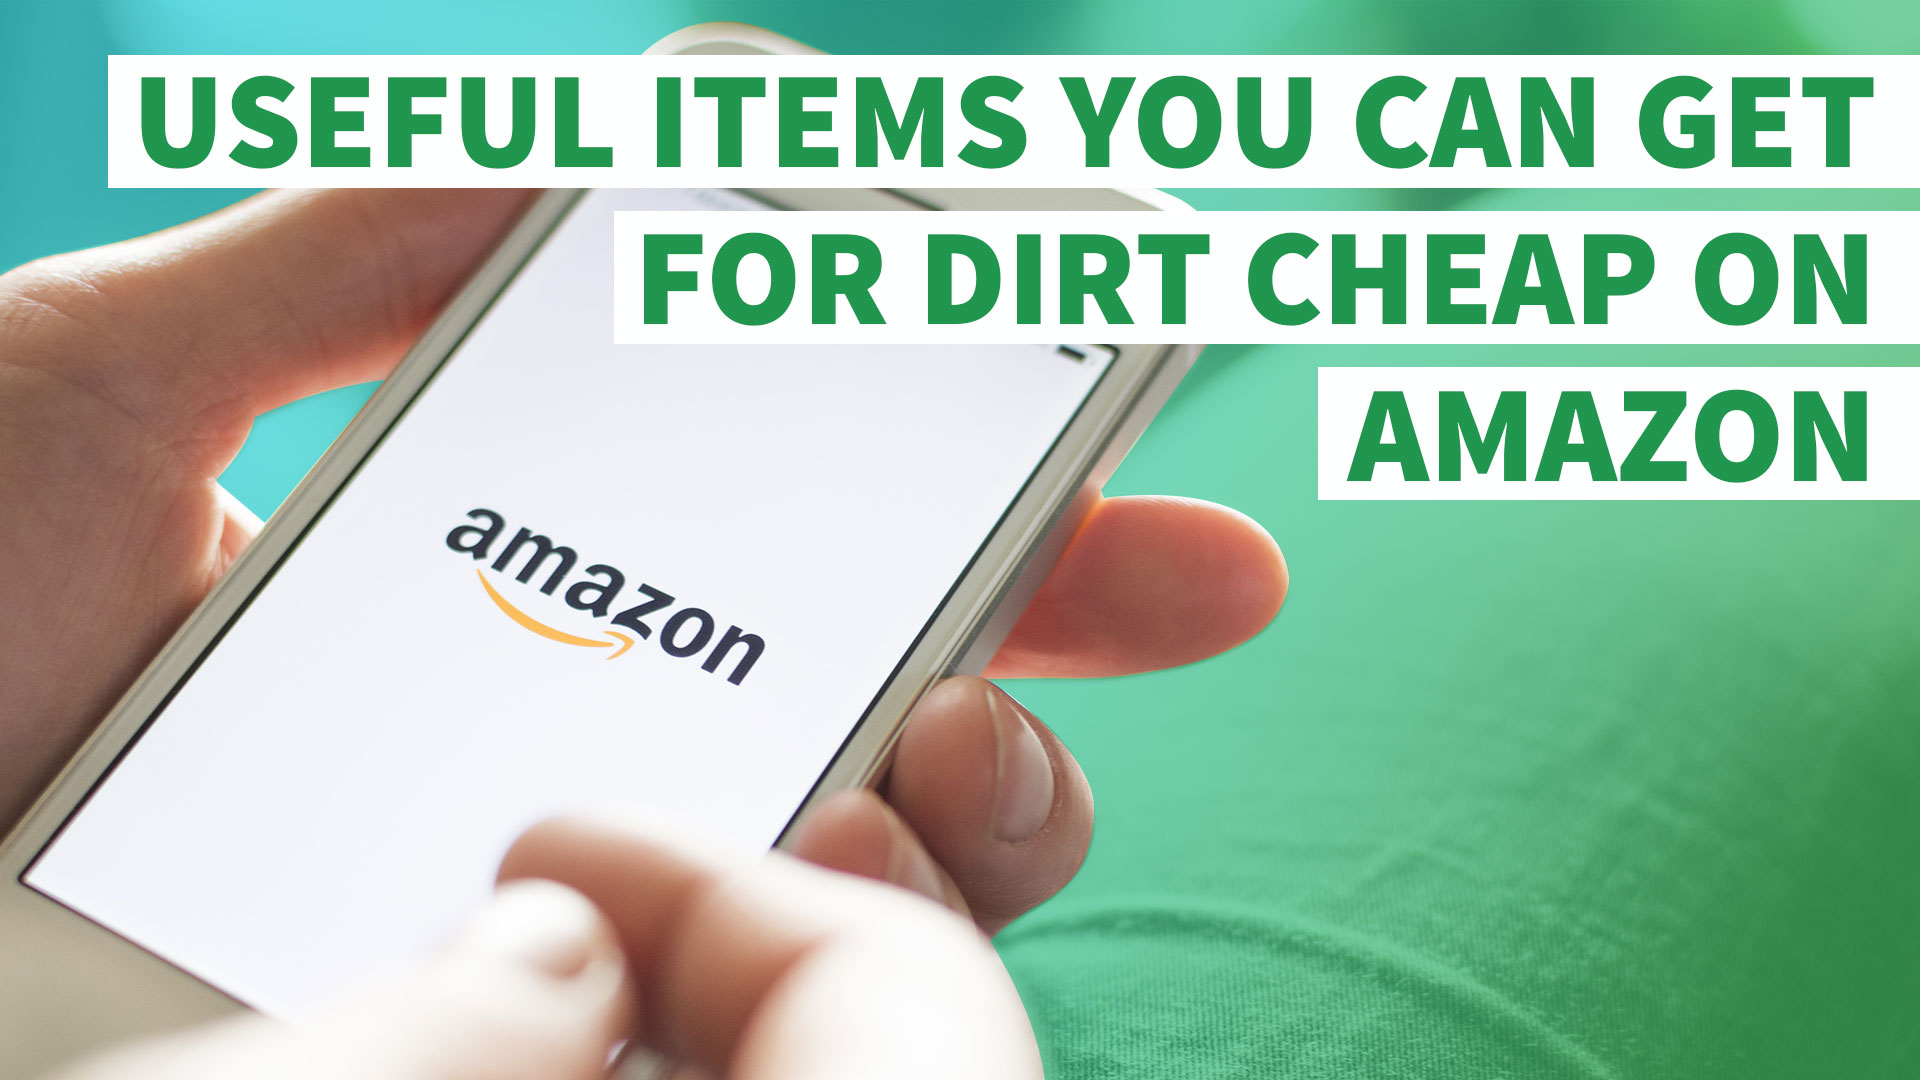 11 Useful Items You Can Get For Dirt Cheap On Amazon